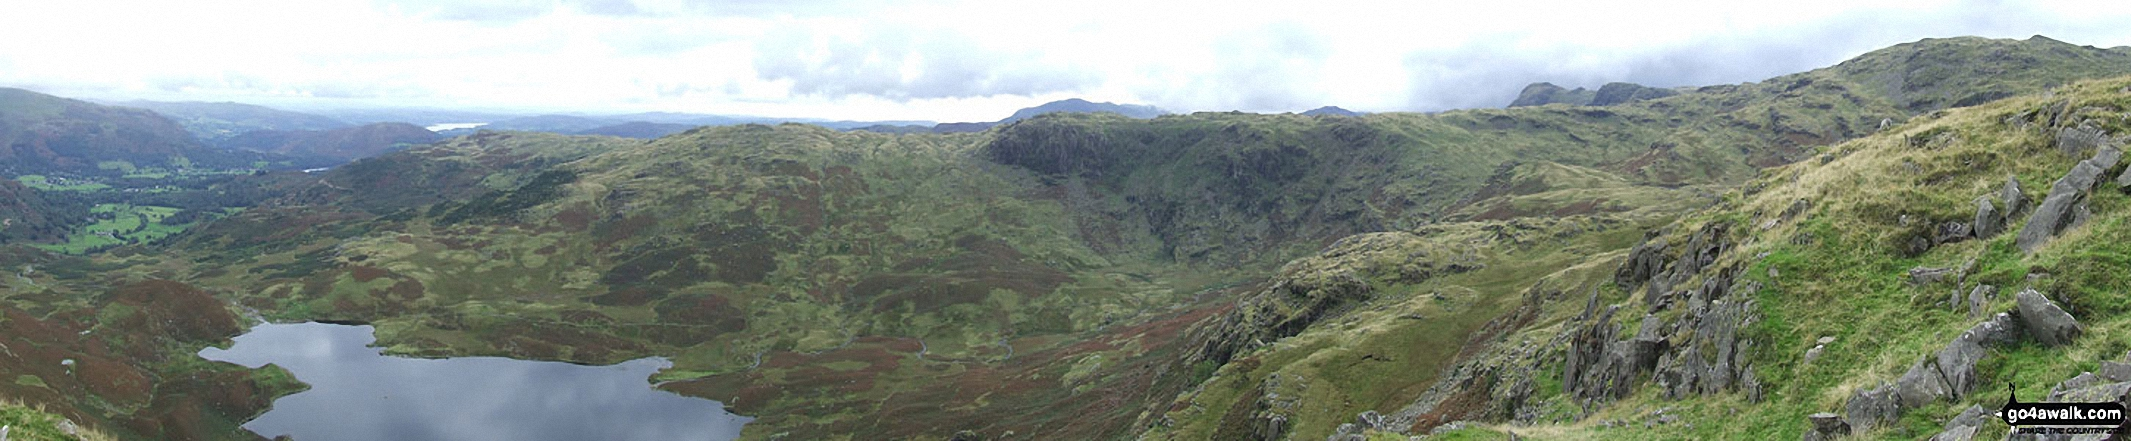 Grasmere, Easedale Tarn and Blea Rigg from Tarn Crag summit